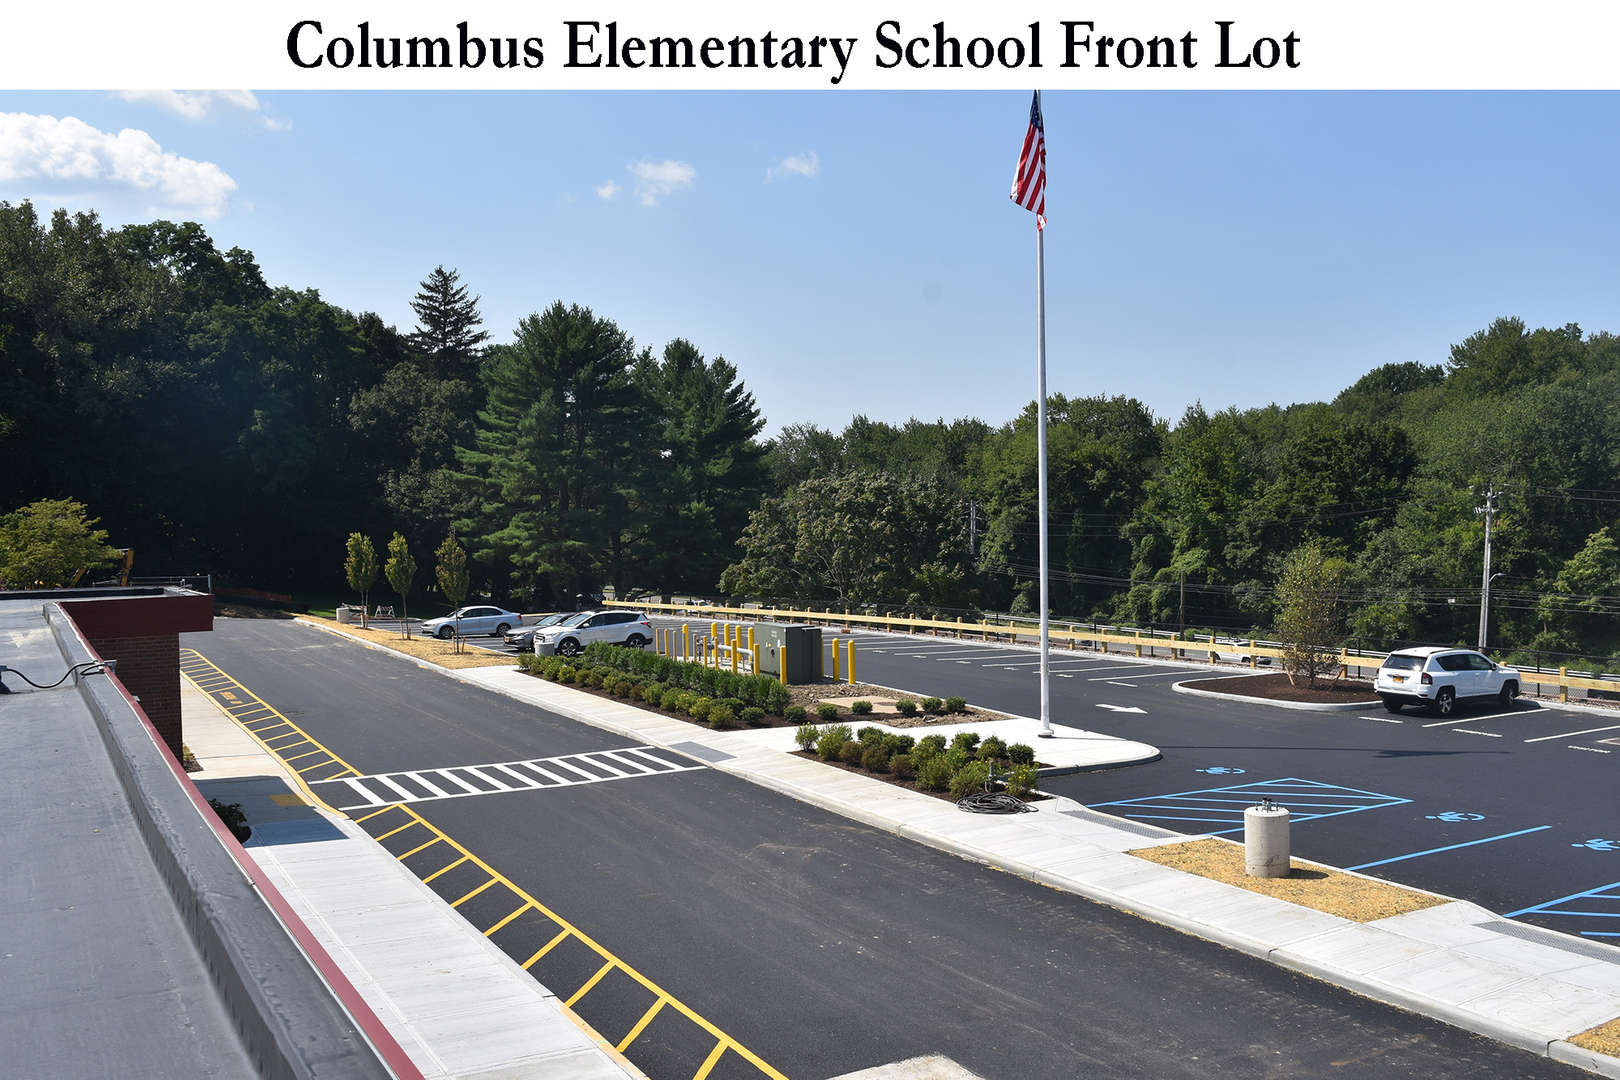 Newly paved front parking lot at Columbus Elementary